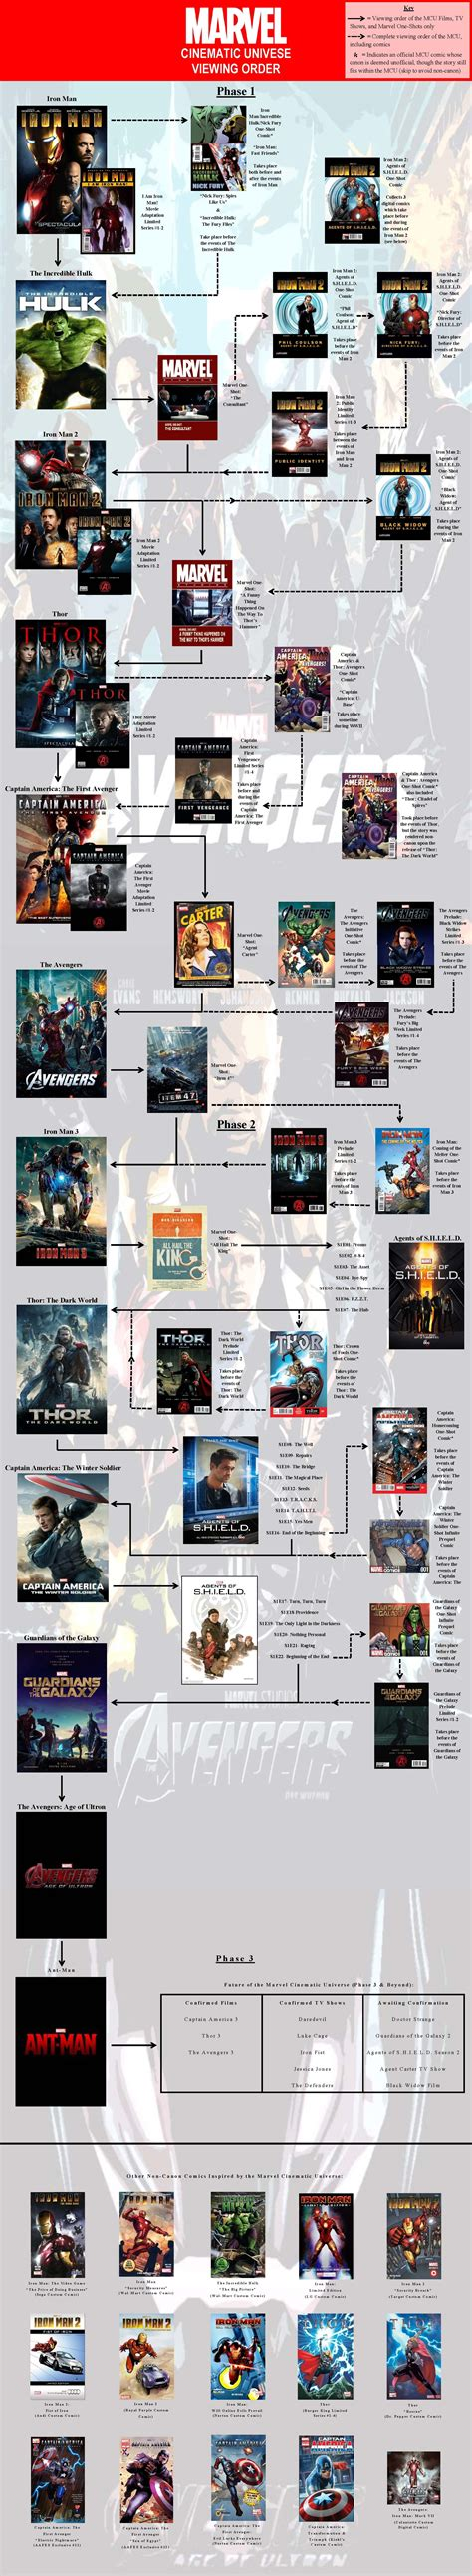 marvel in order marvel cinematic universe viewing order updated